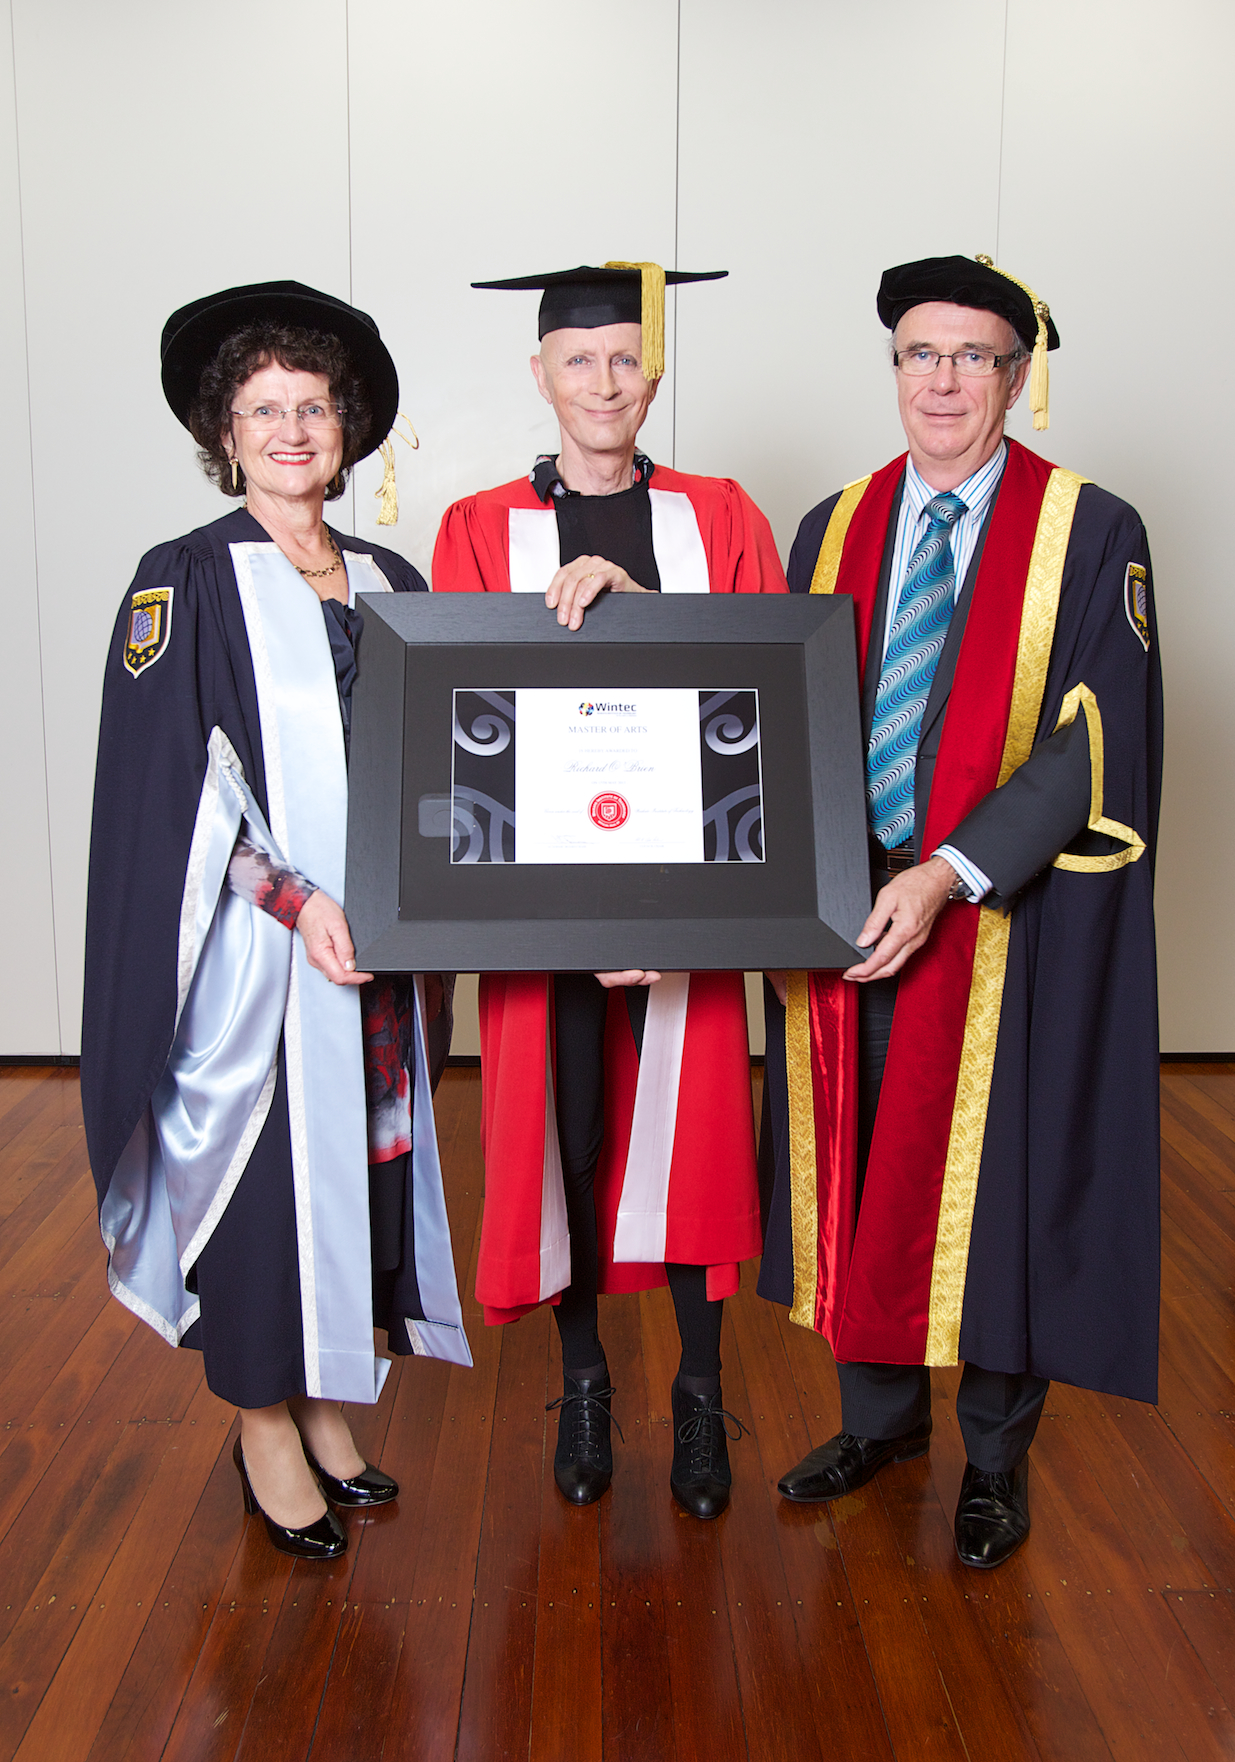 NO ROCK HORROR HERE: Wintec Chair, Mary Cave-Palmer, honorary recipient, Richard O'Brien and Wintec Chief Executive, Mark Flowers.